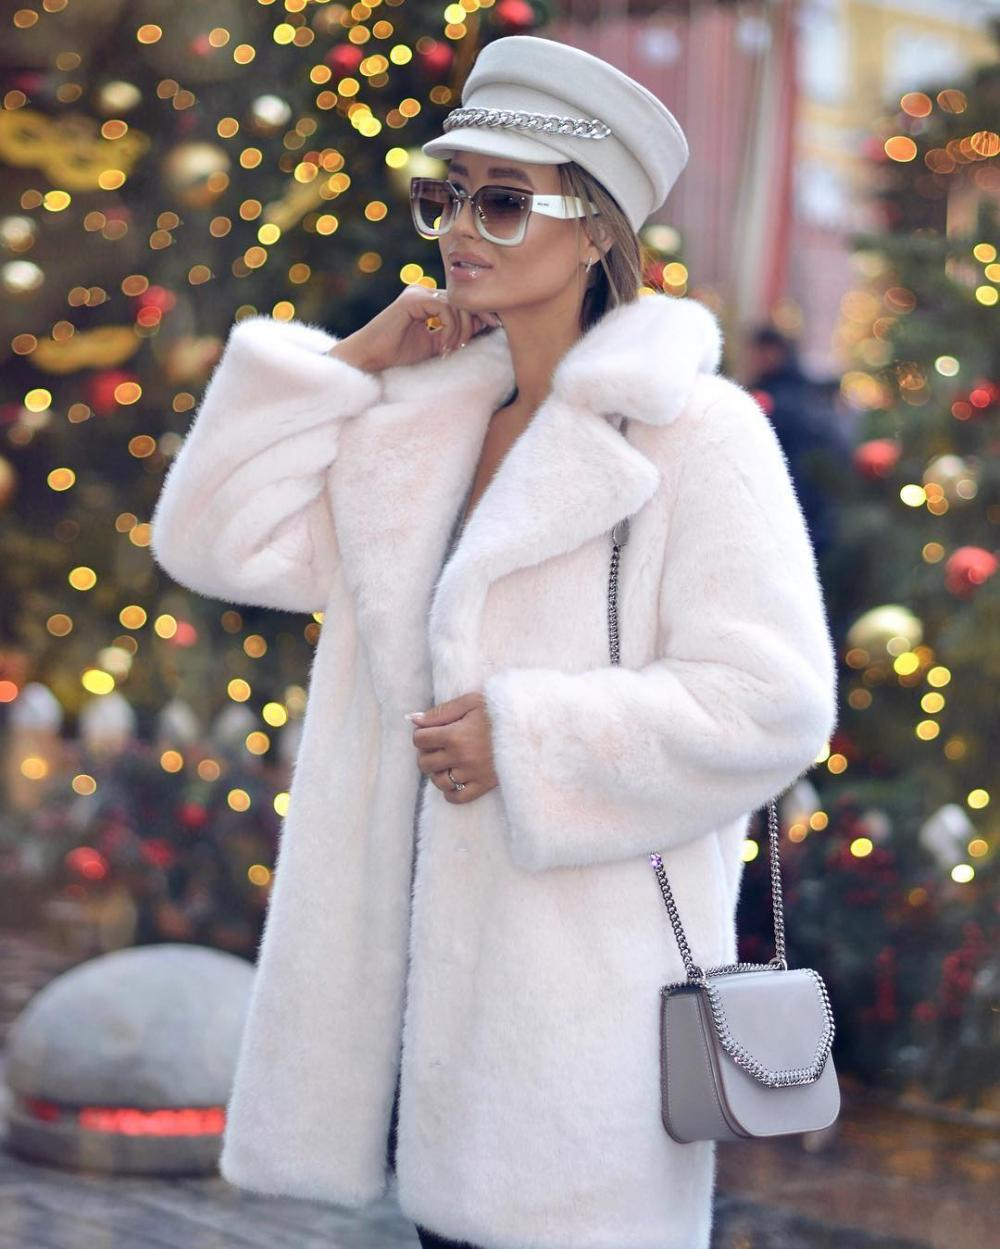 A medium-length white fur coat will go well with any outfit